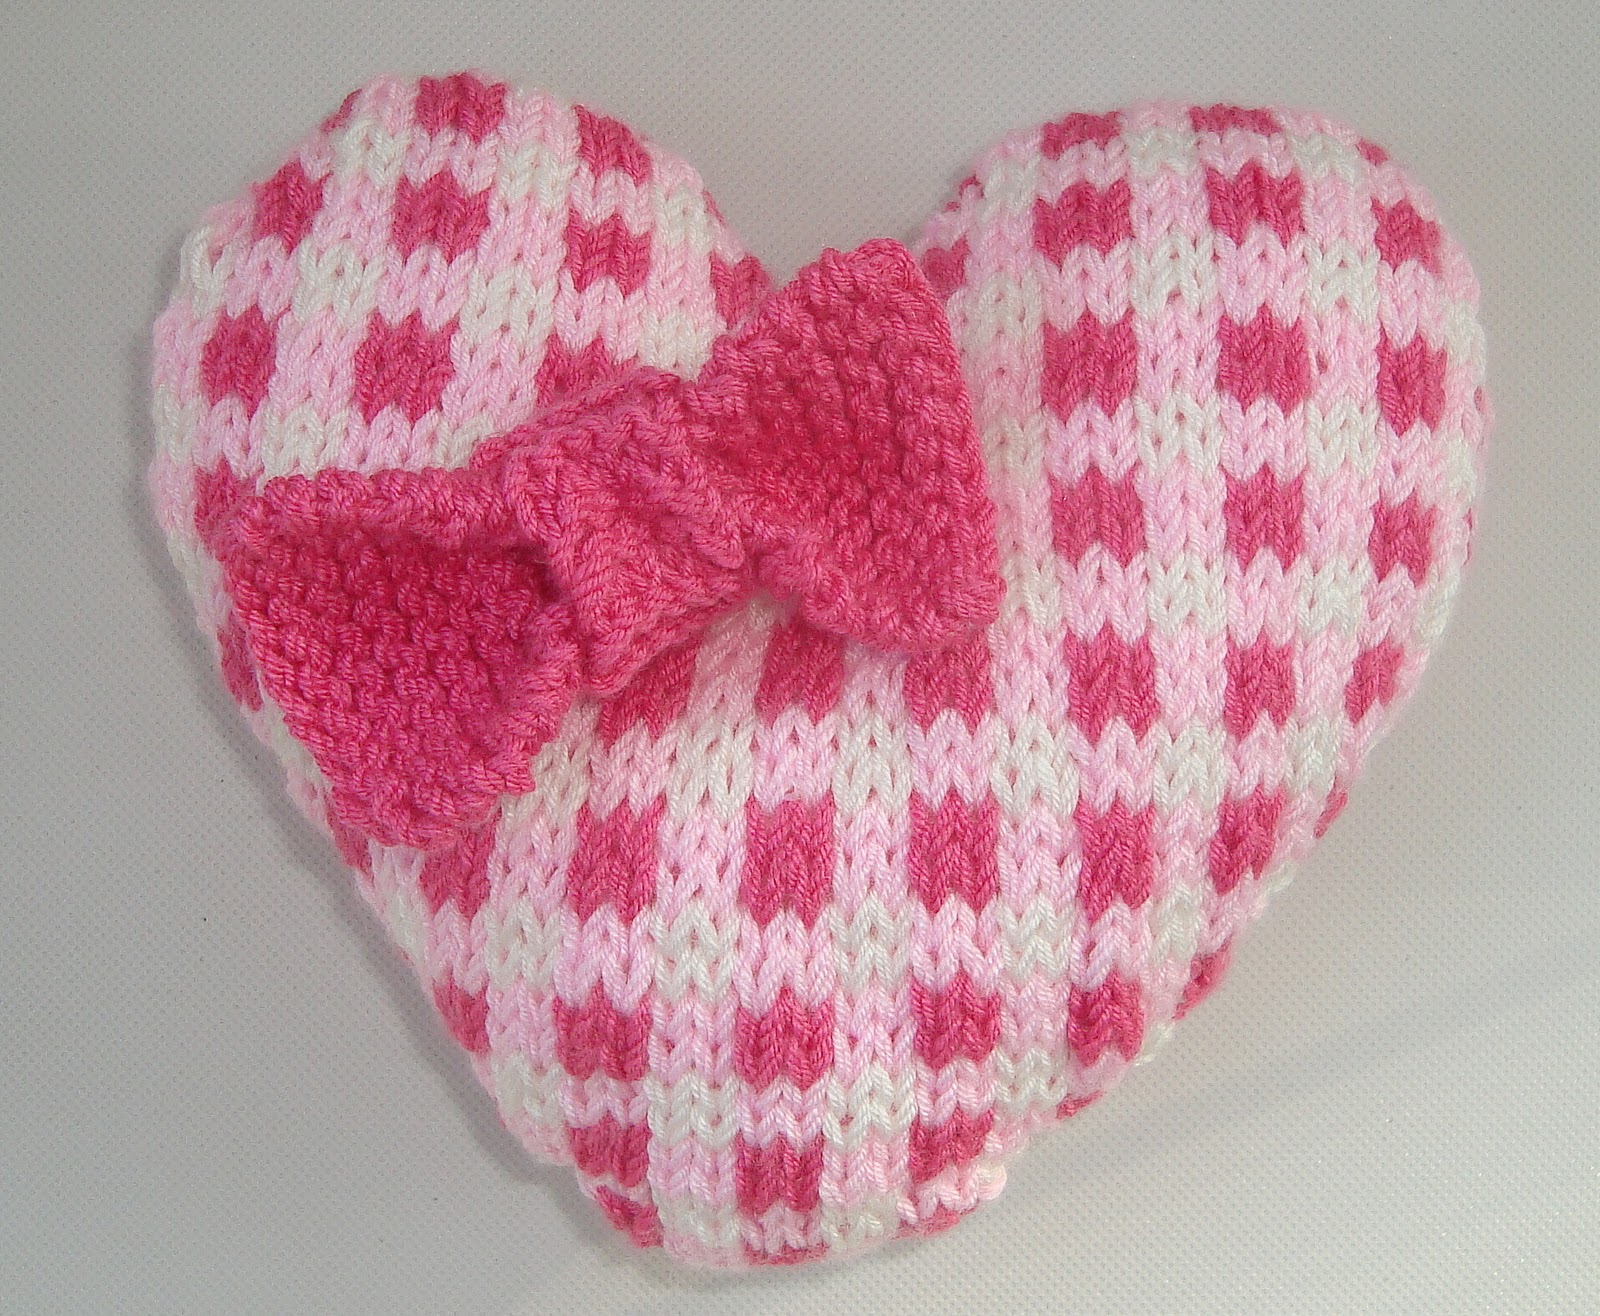 Knitting Heart Pattern : Heart knitting pattern a